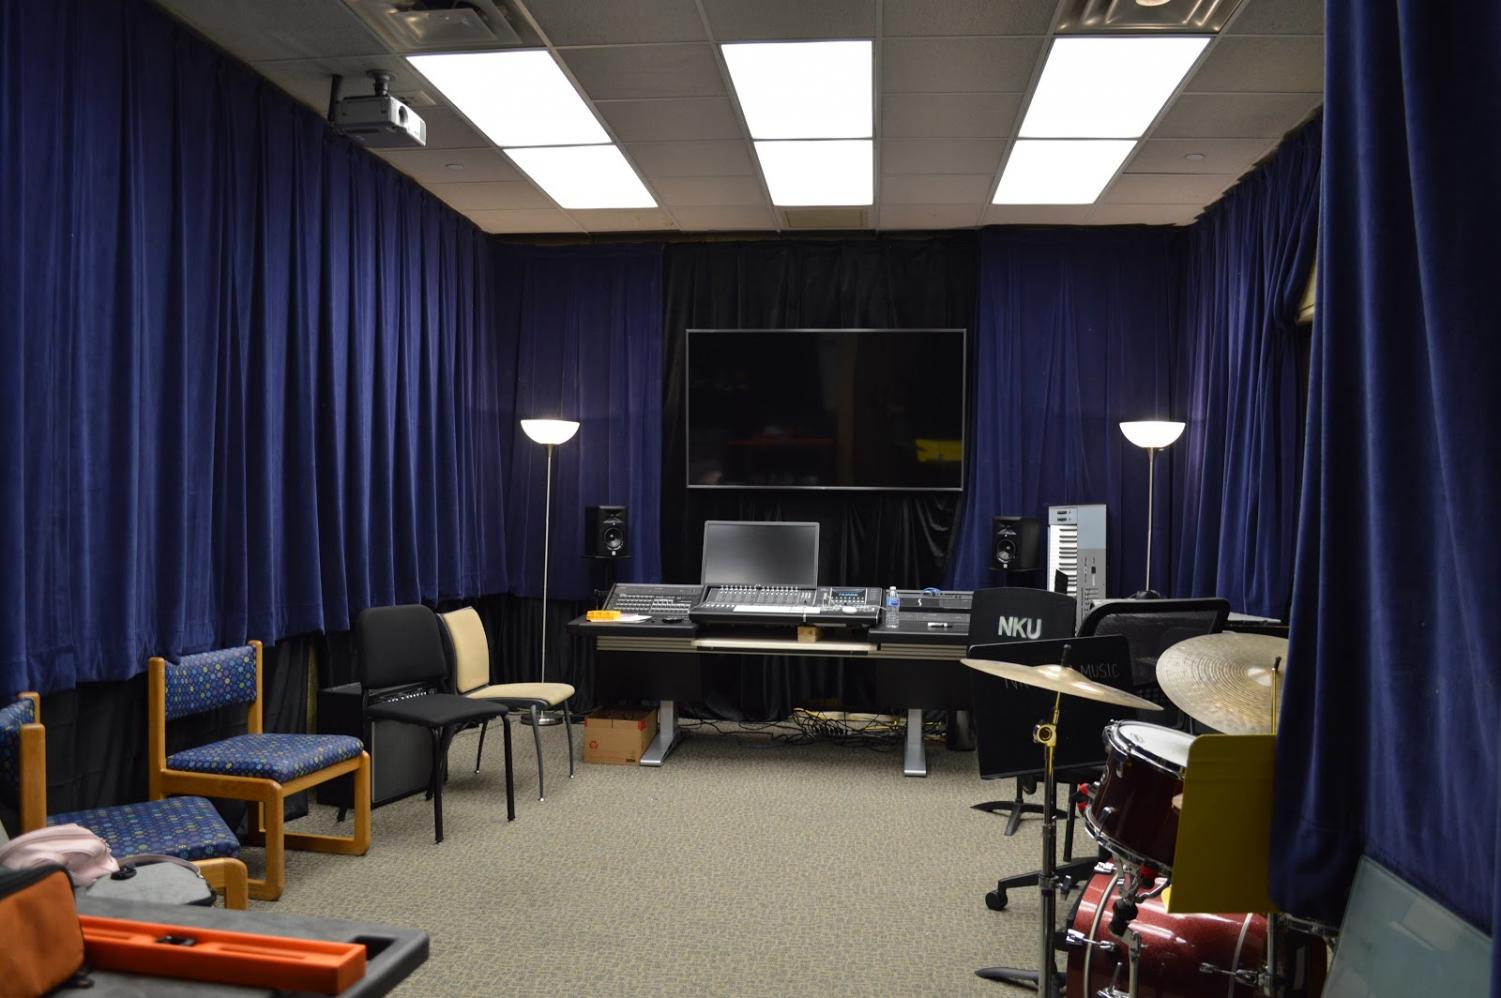 Full length image of the studio control room.